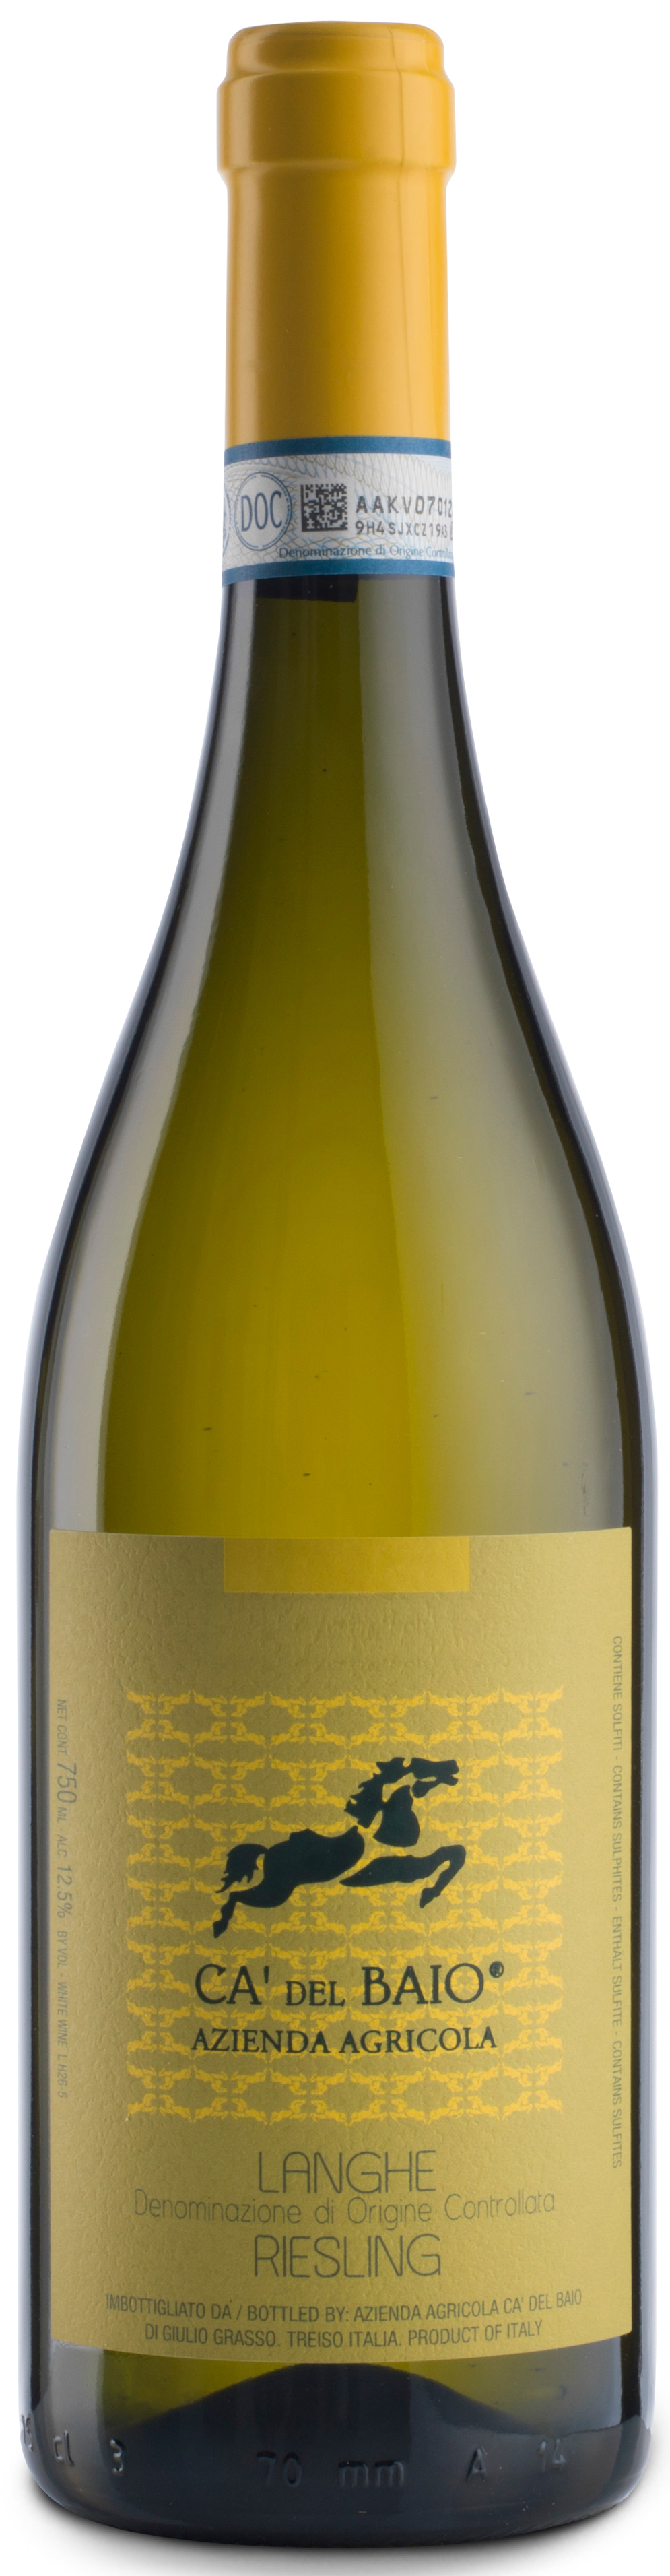 Ca' Del Baio, Langhe Riesling, 2014